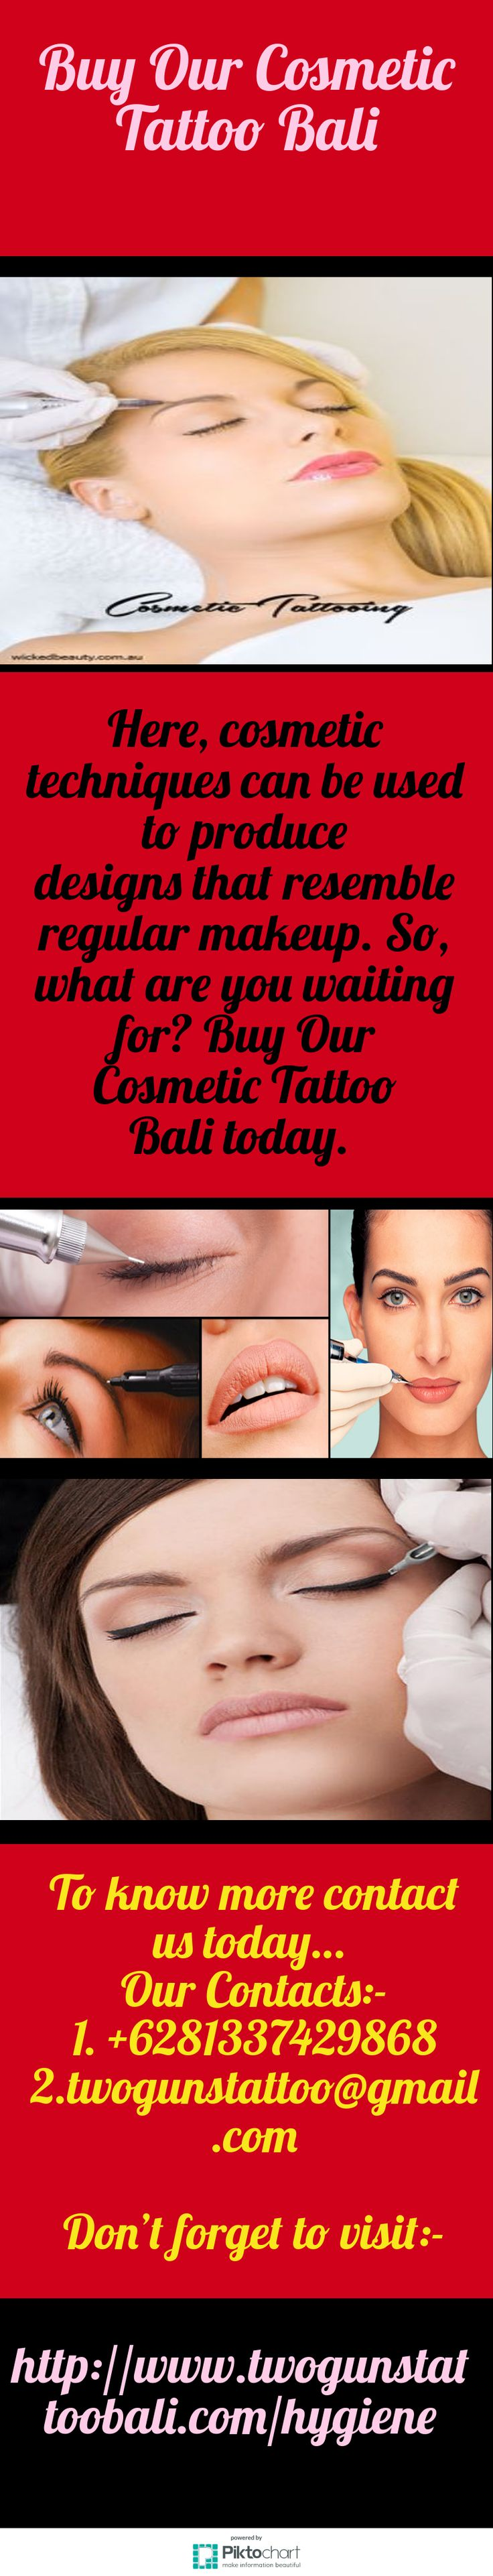 Cosmatic makeup can be used to cover up face or body scars and white sports. So, what are you waiting for? Buy Our Cosmetic Tattoo Bali today. See more: http://www.twogunstattoobali.com/hygiene